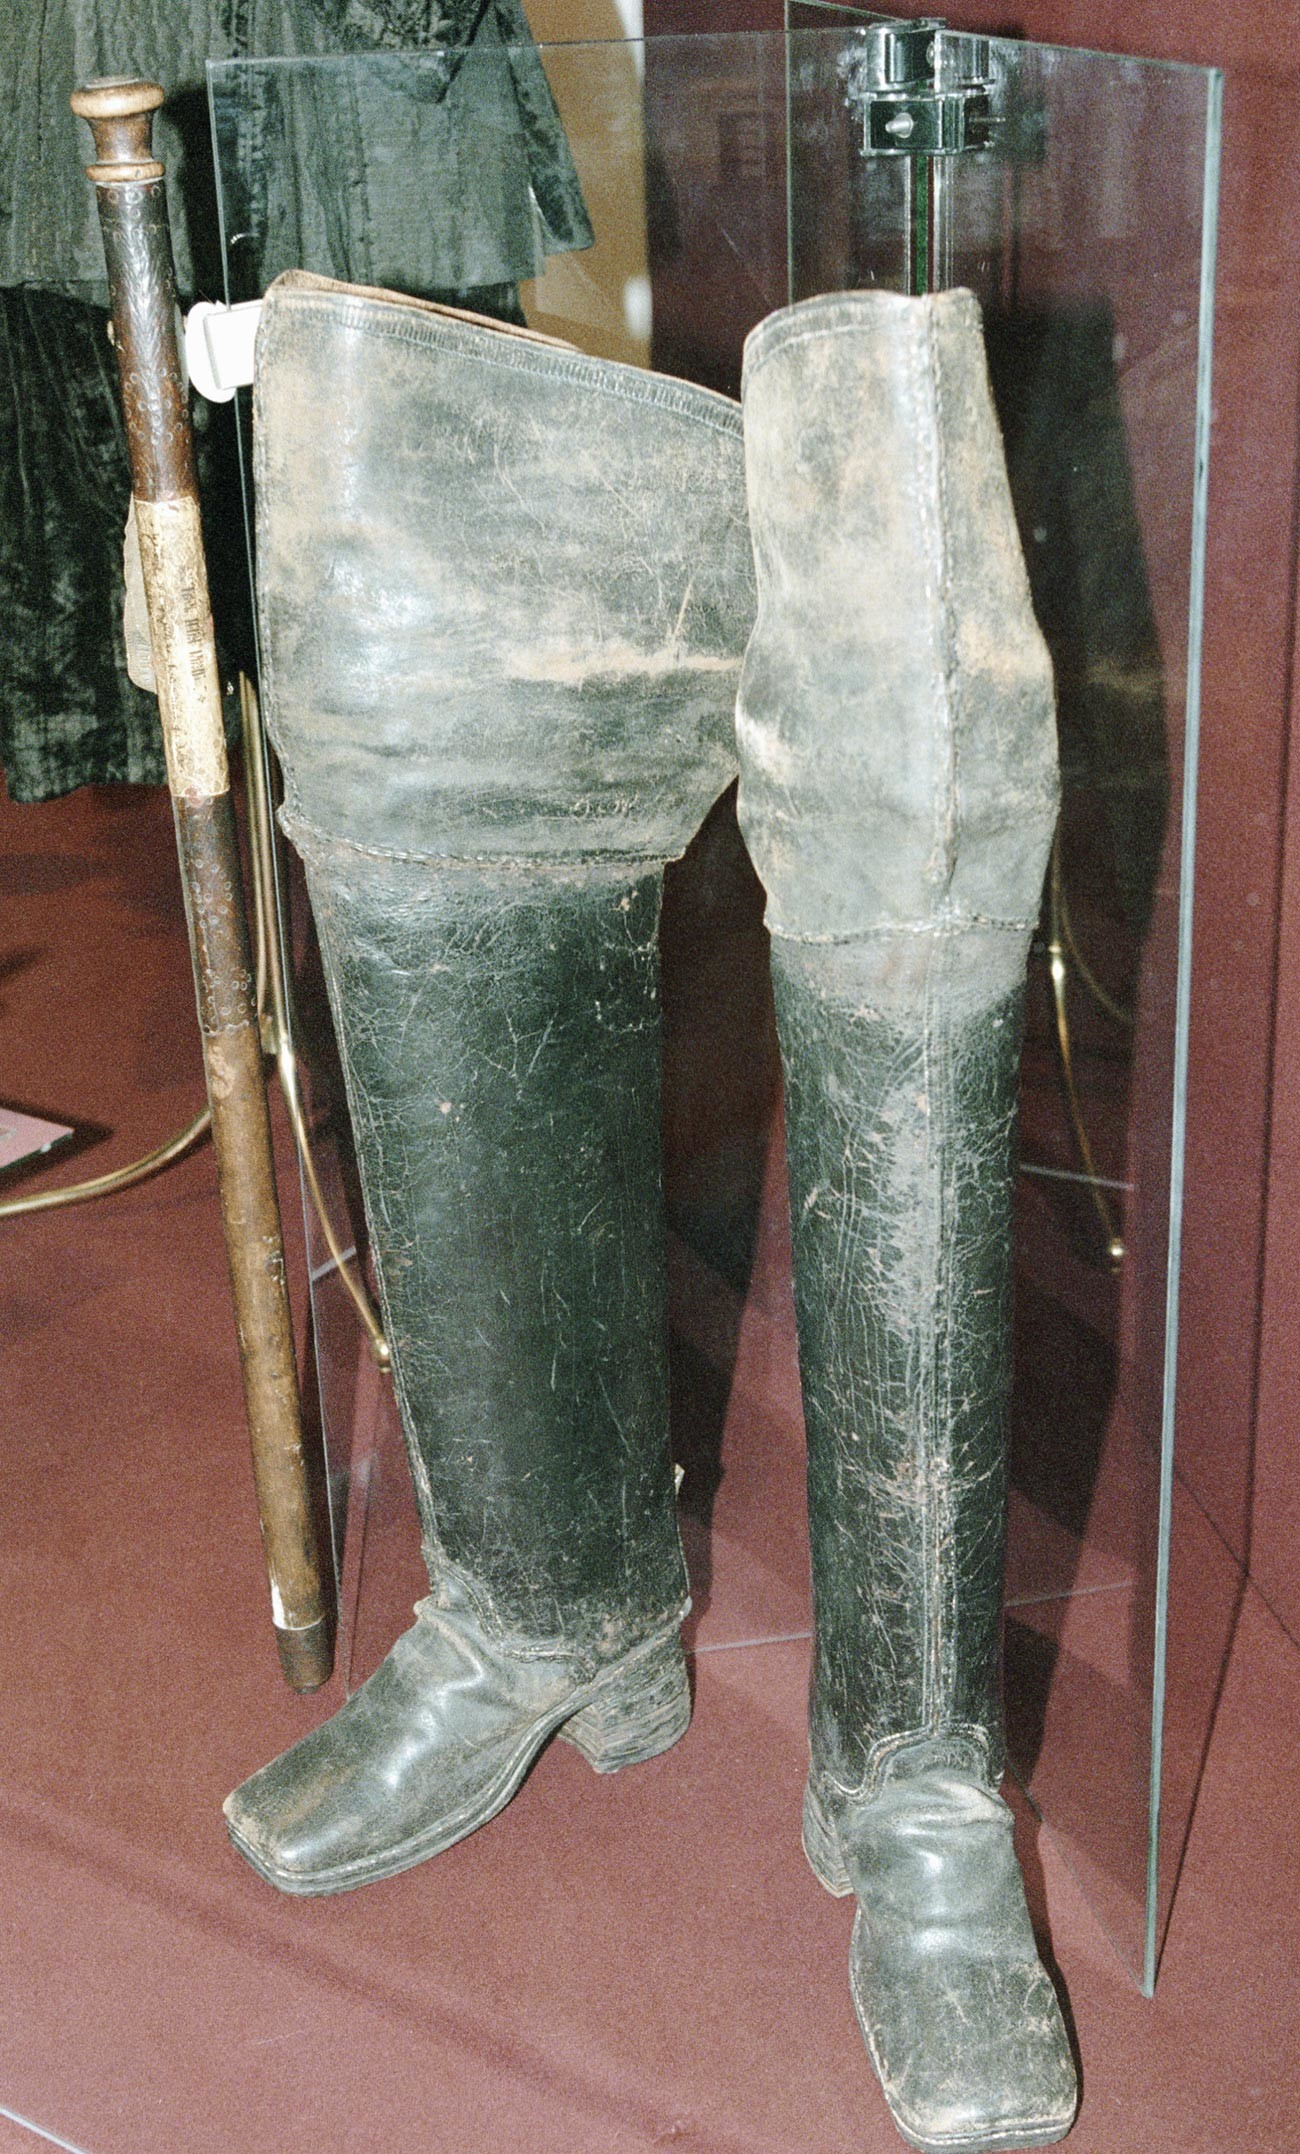 Peter the Great's Hessian boots